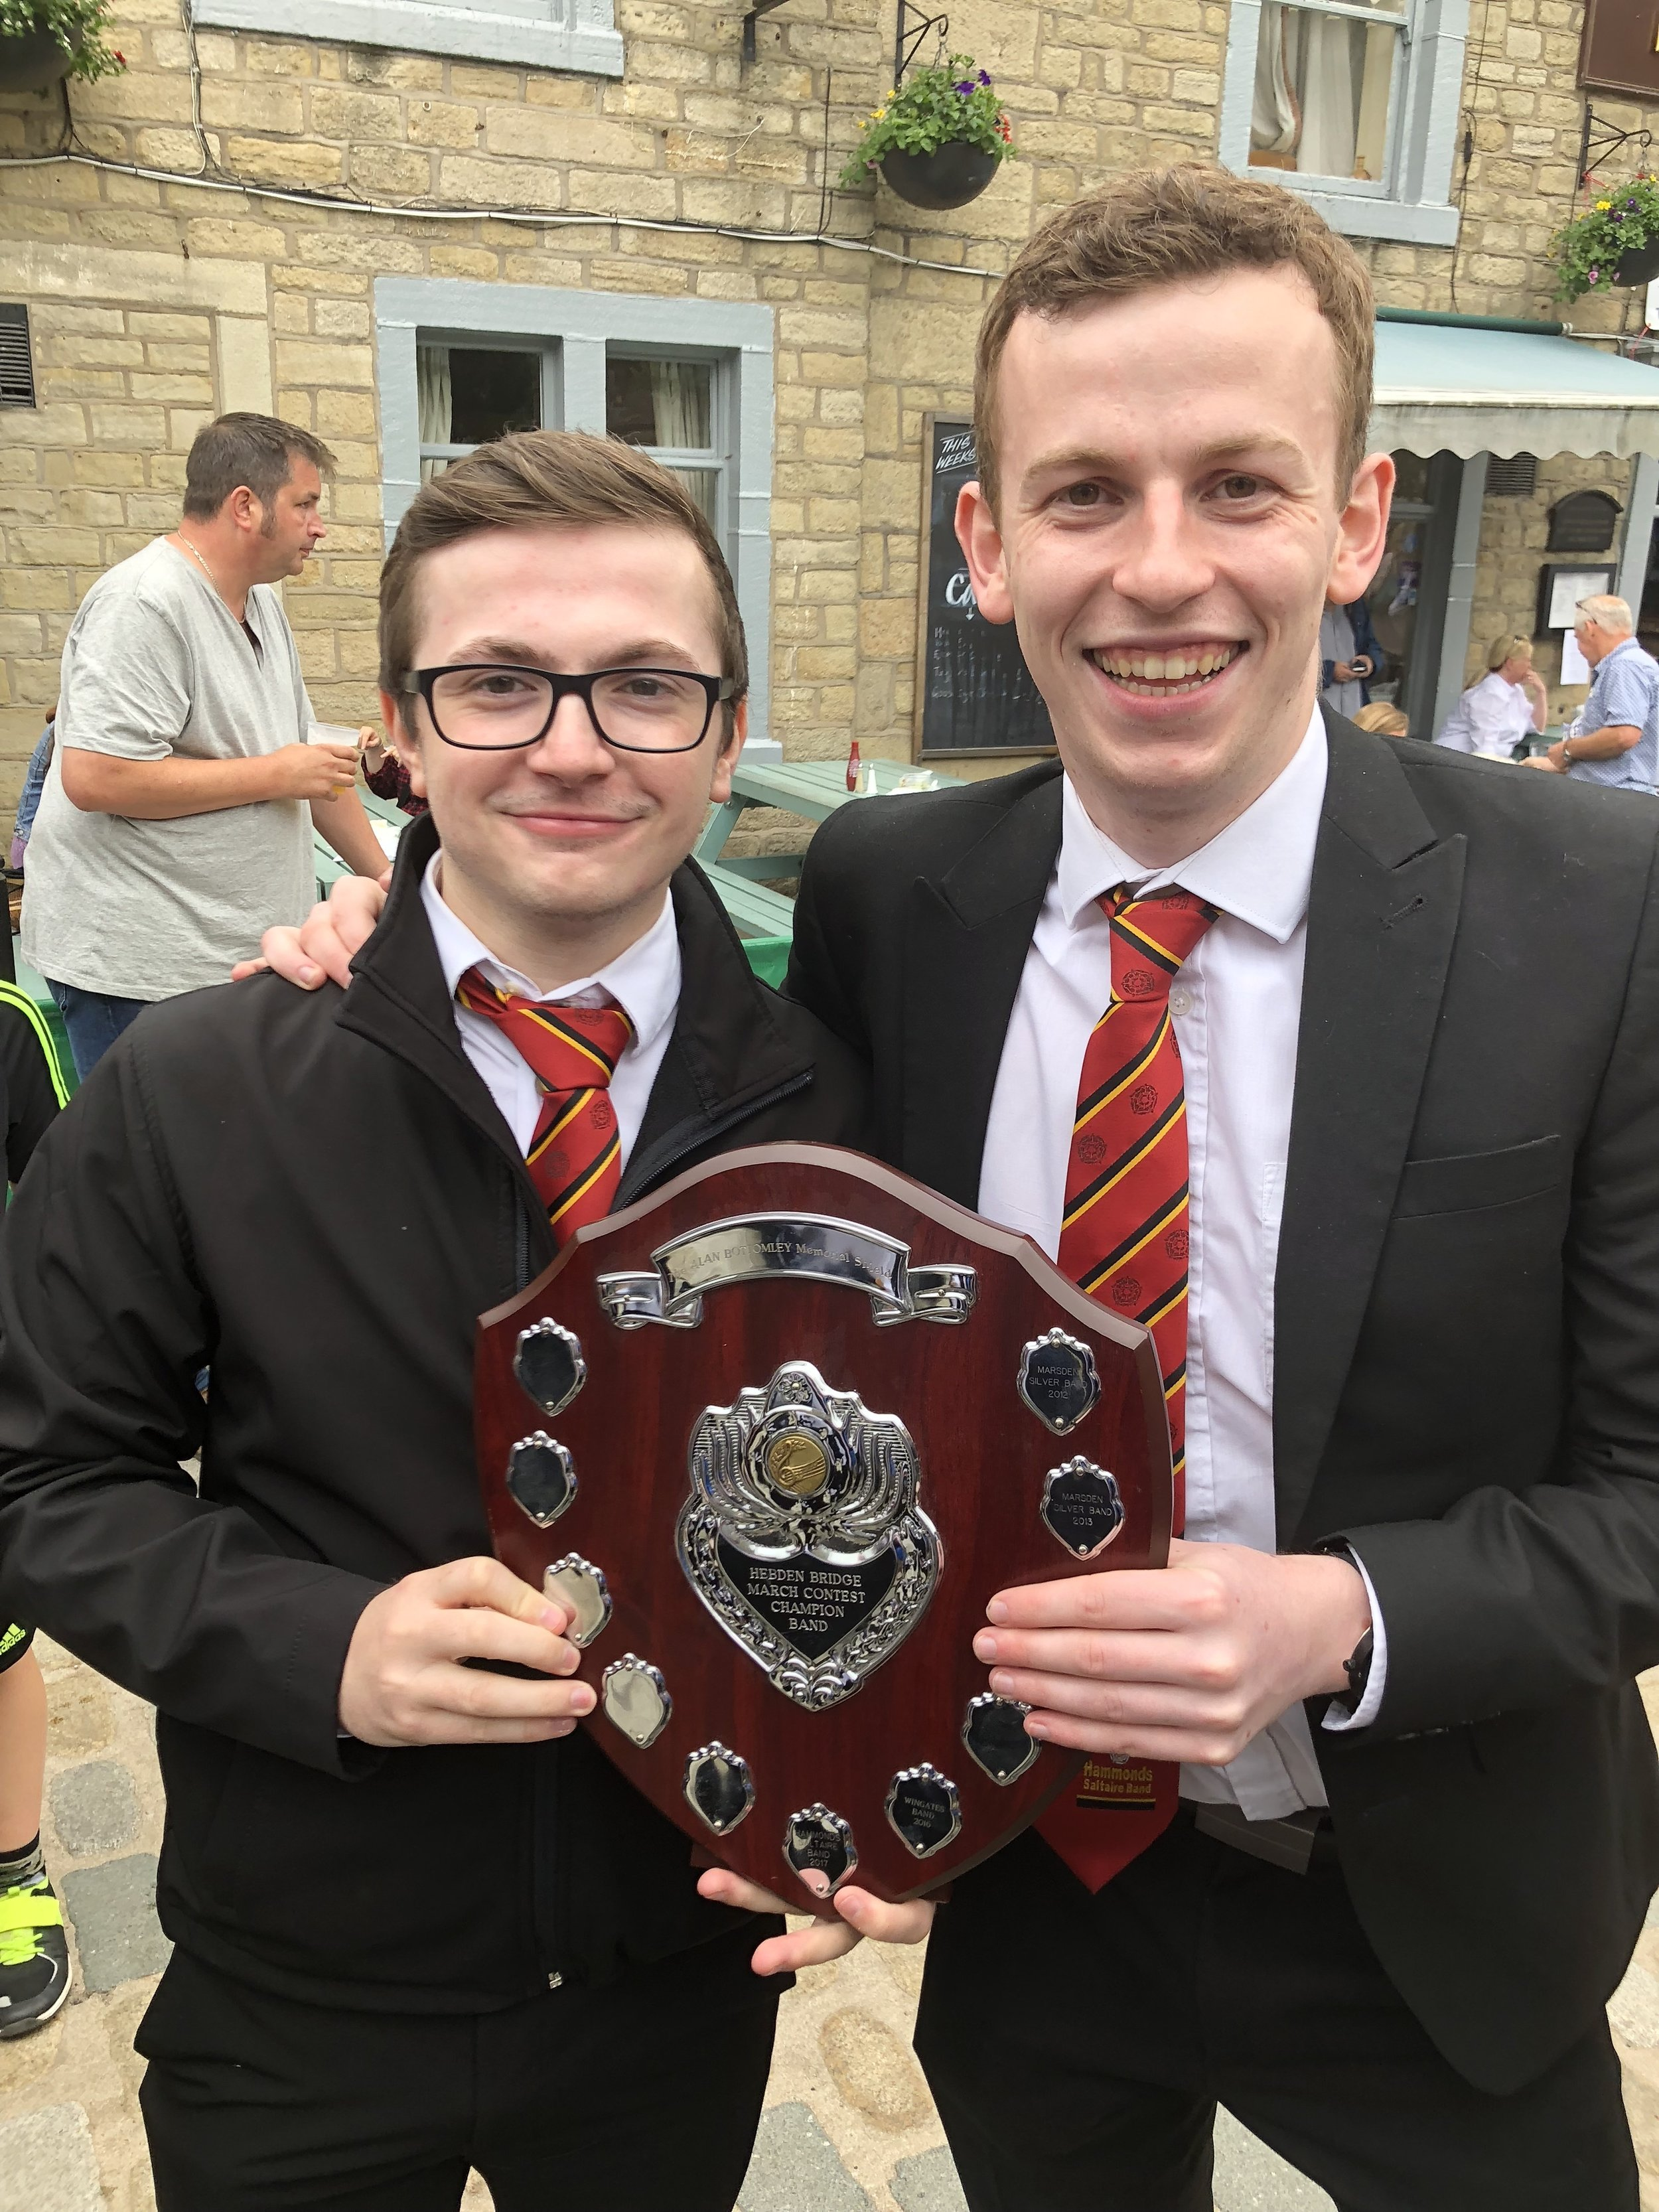 Ashley Higgins and Philip Varley with the shield